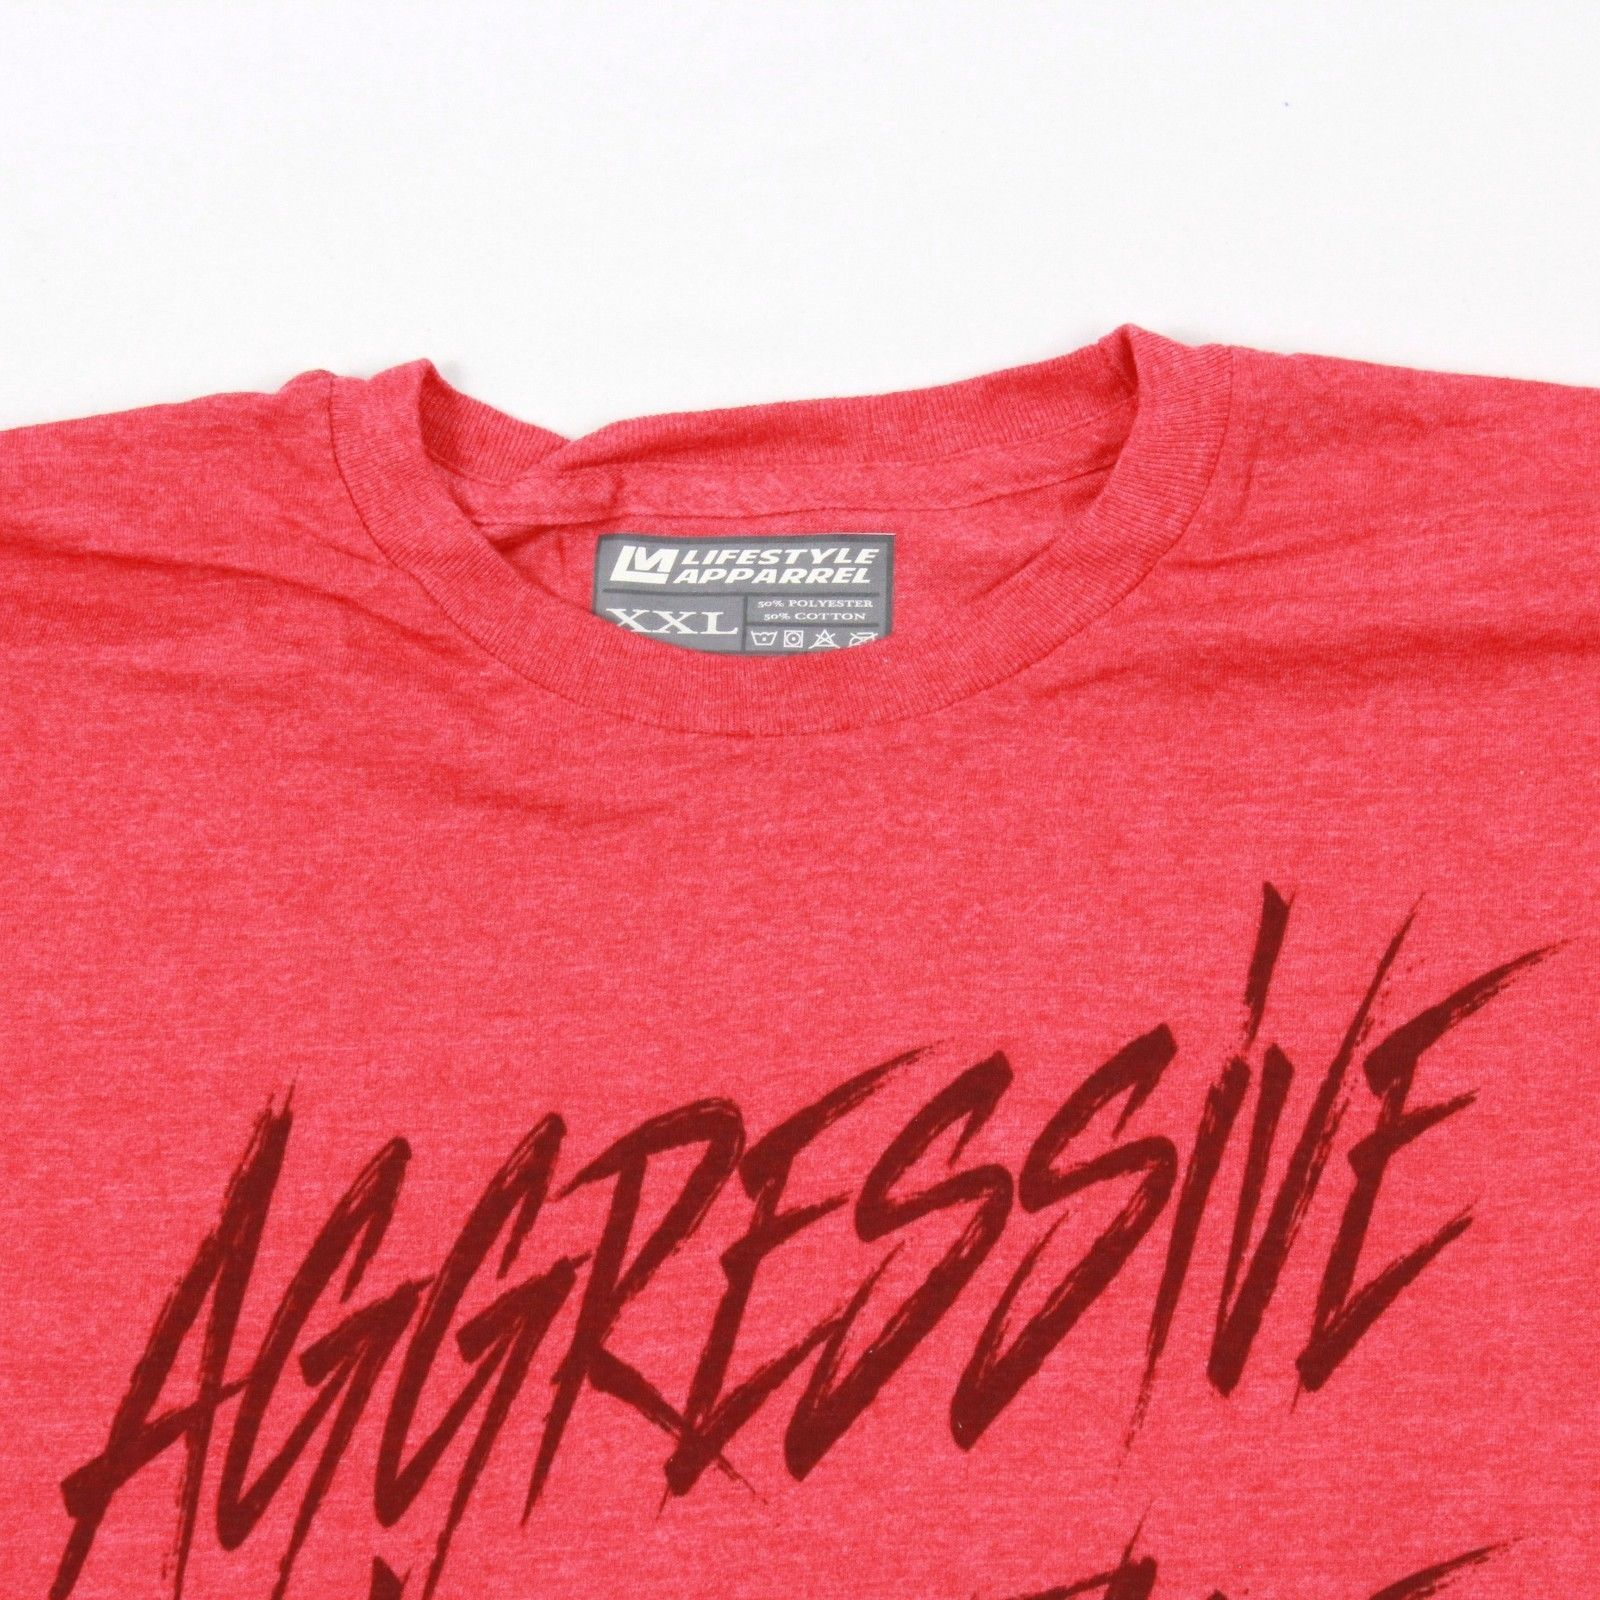 NEW Aggressive XXL T Shirt Adult 2XL Shortsleeve Tee Tapered Fit Red Heather